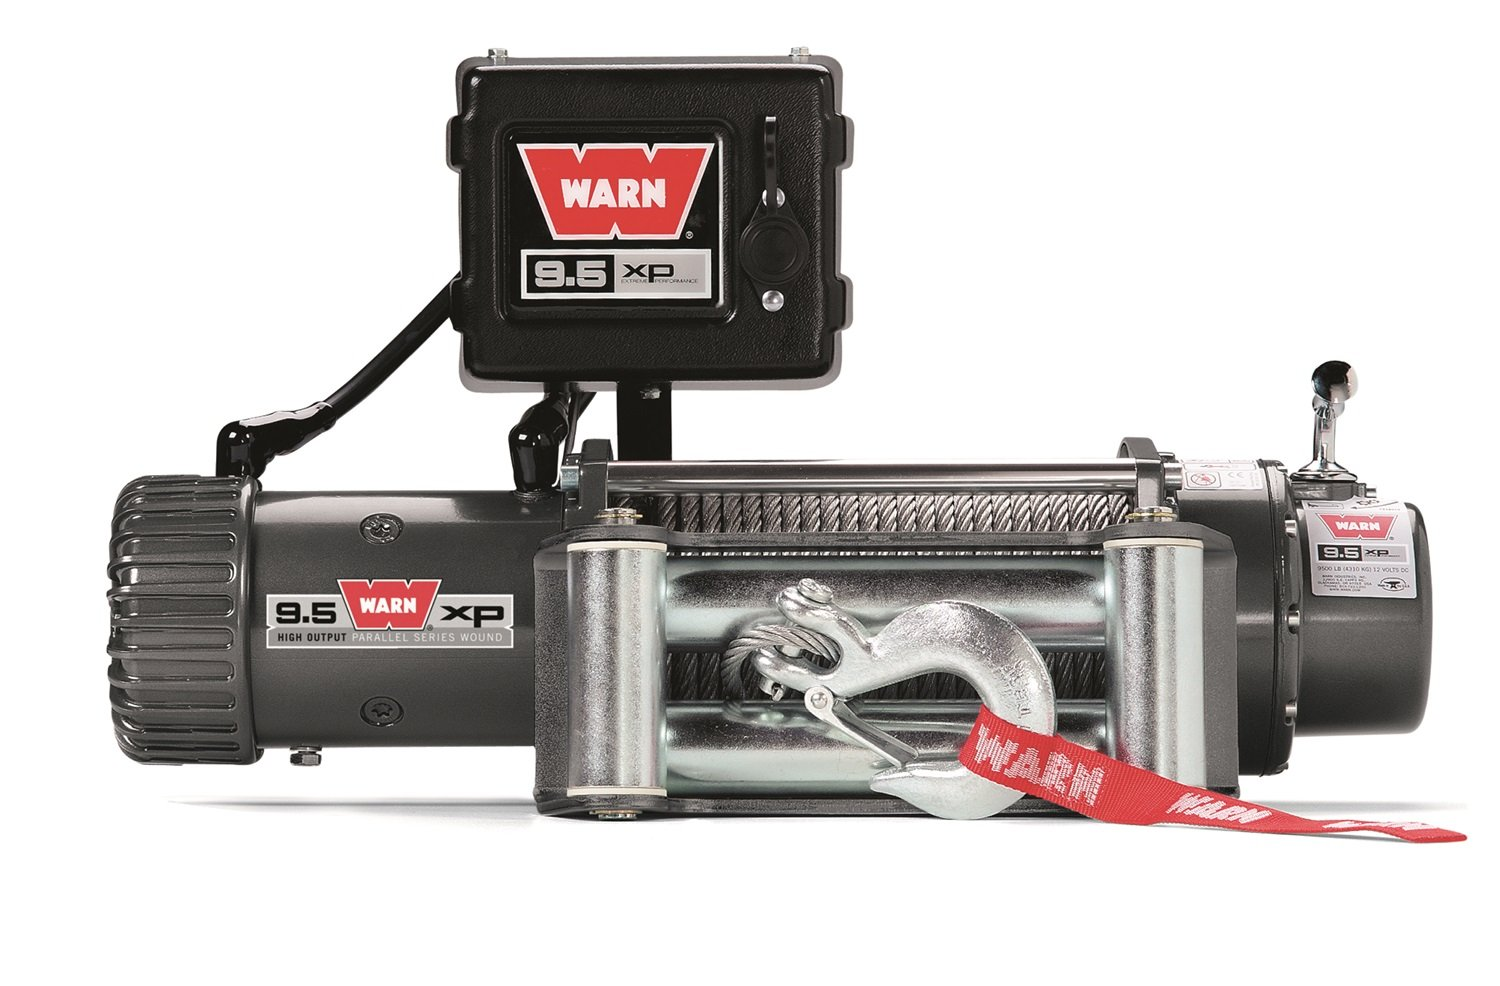 Warn 68500 95xp 9500 Lb Winch Winches Amazon Canada Xd9000i Wiring Diagram Free Picture